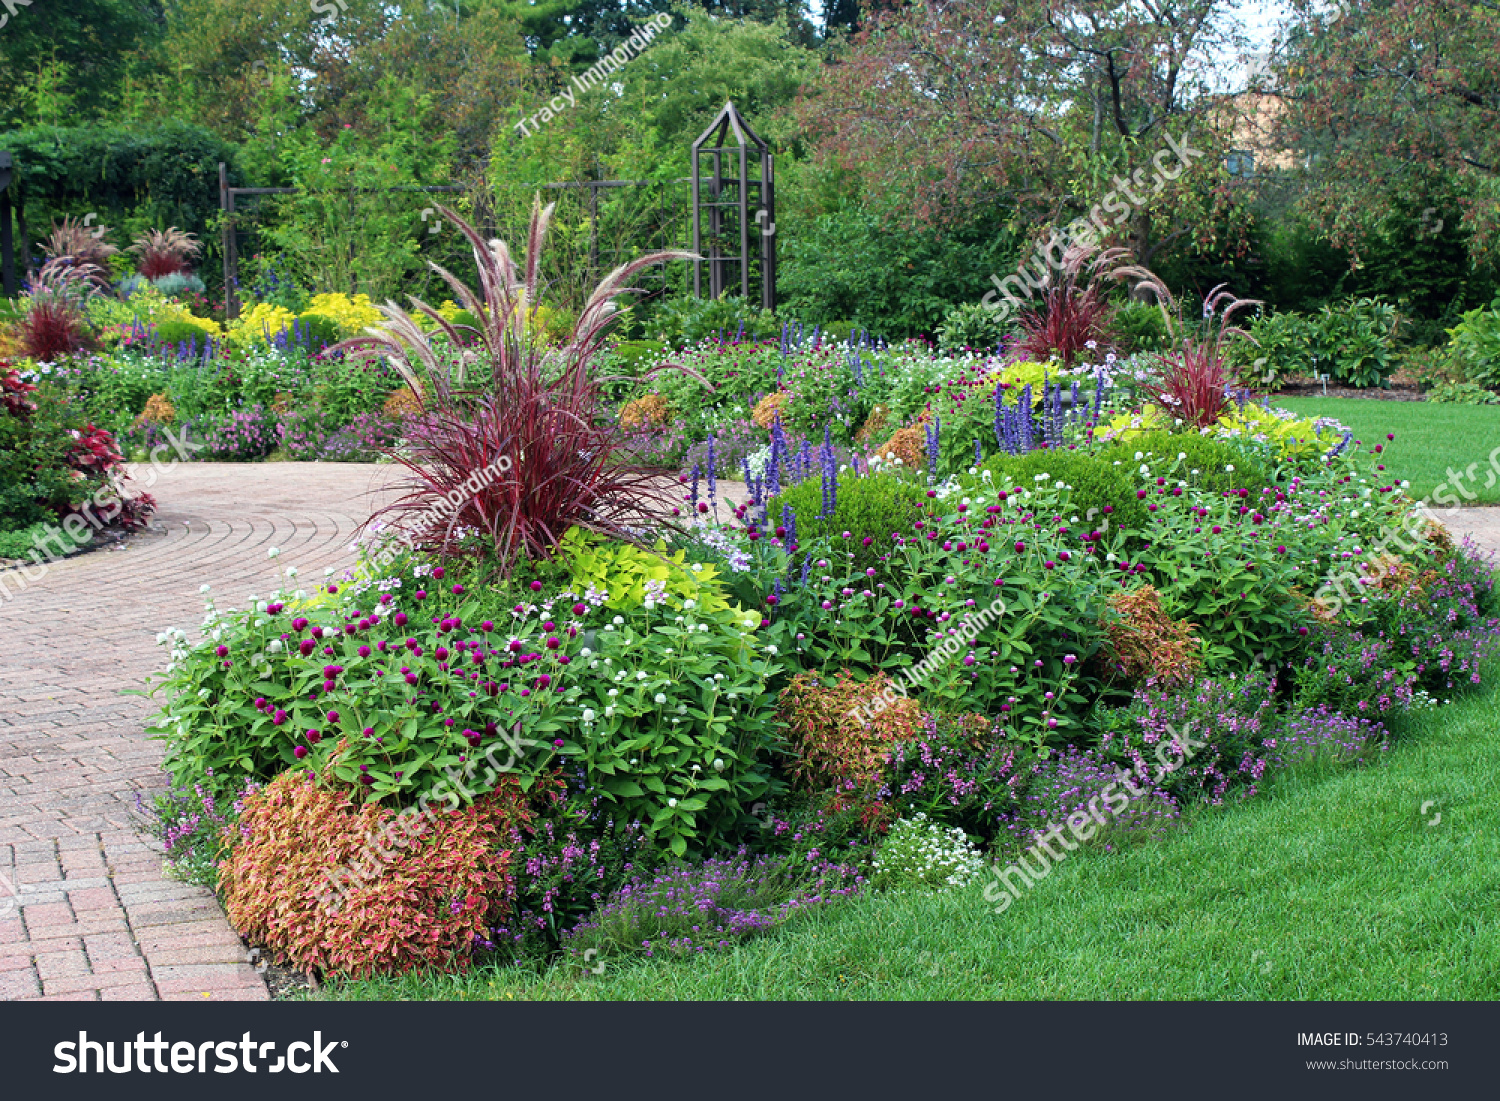 The Perennial Garden In Full Bloom During The Summer At Olbrich Botanical  Gardens In Madison,